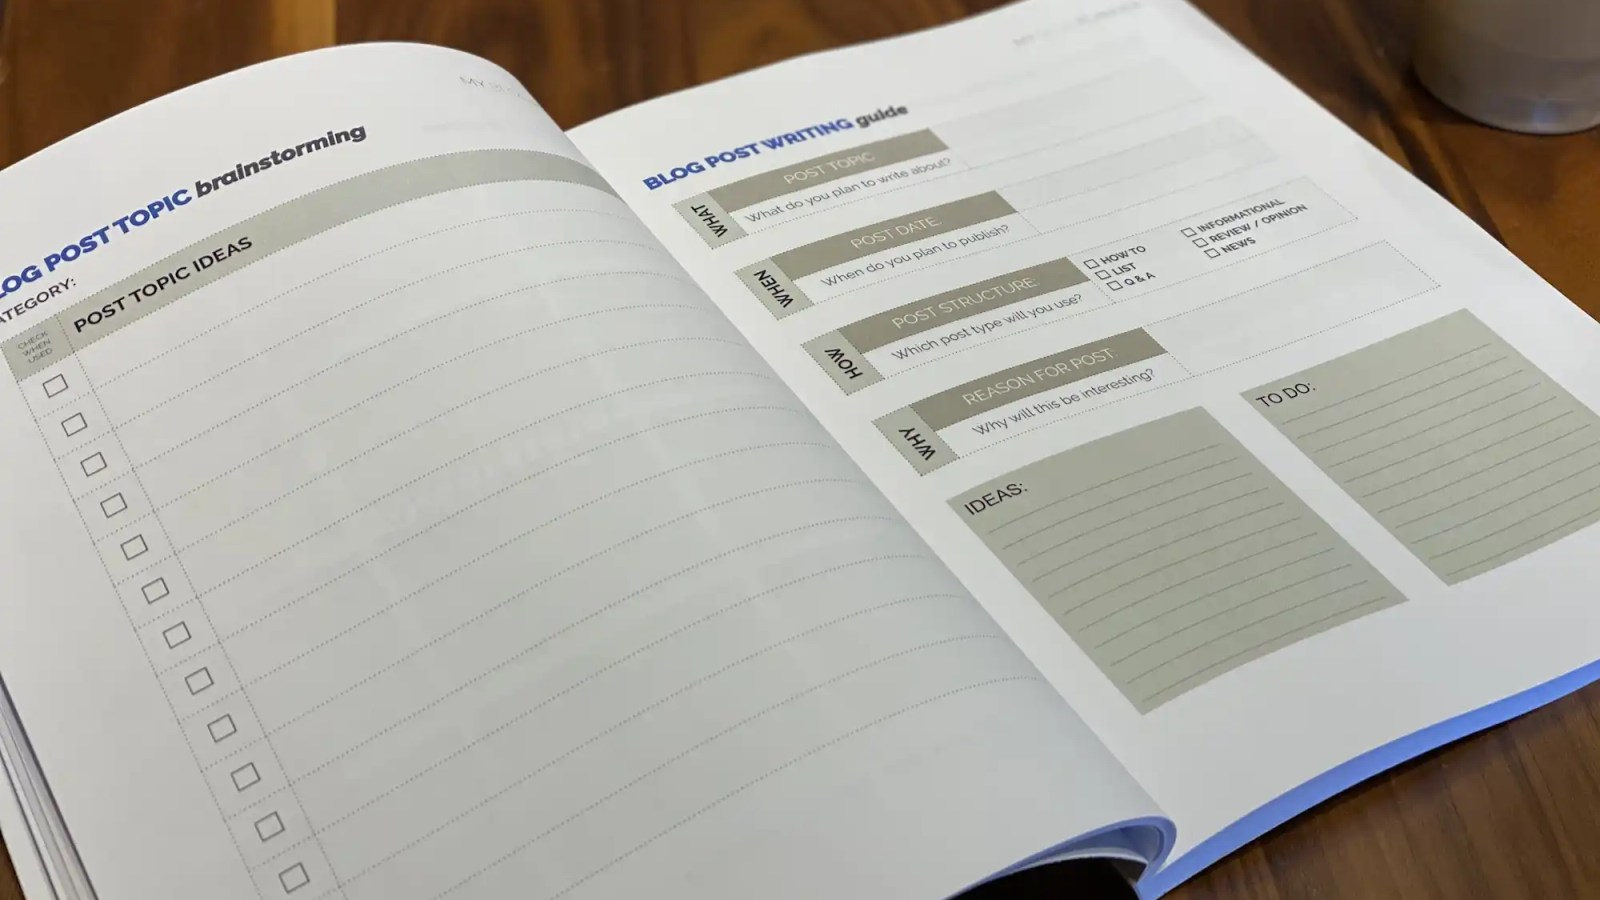 Your new Blog Planner includes terrific worksheets for brainstorming blog posts.